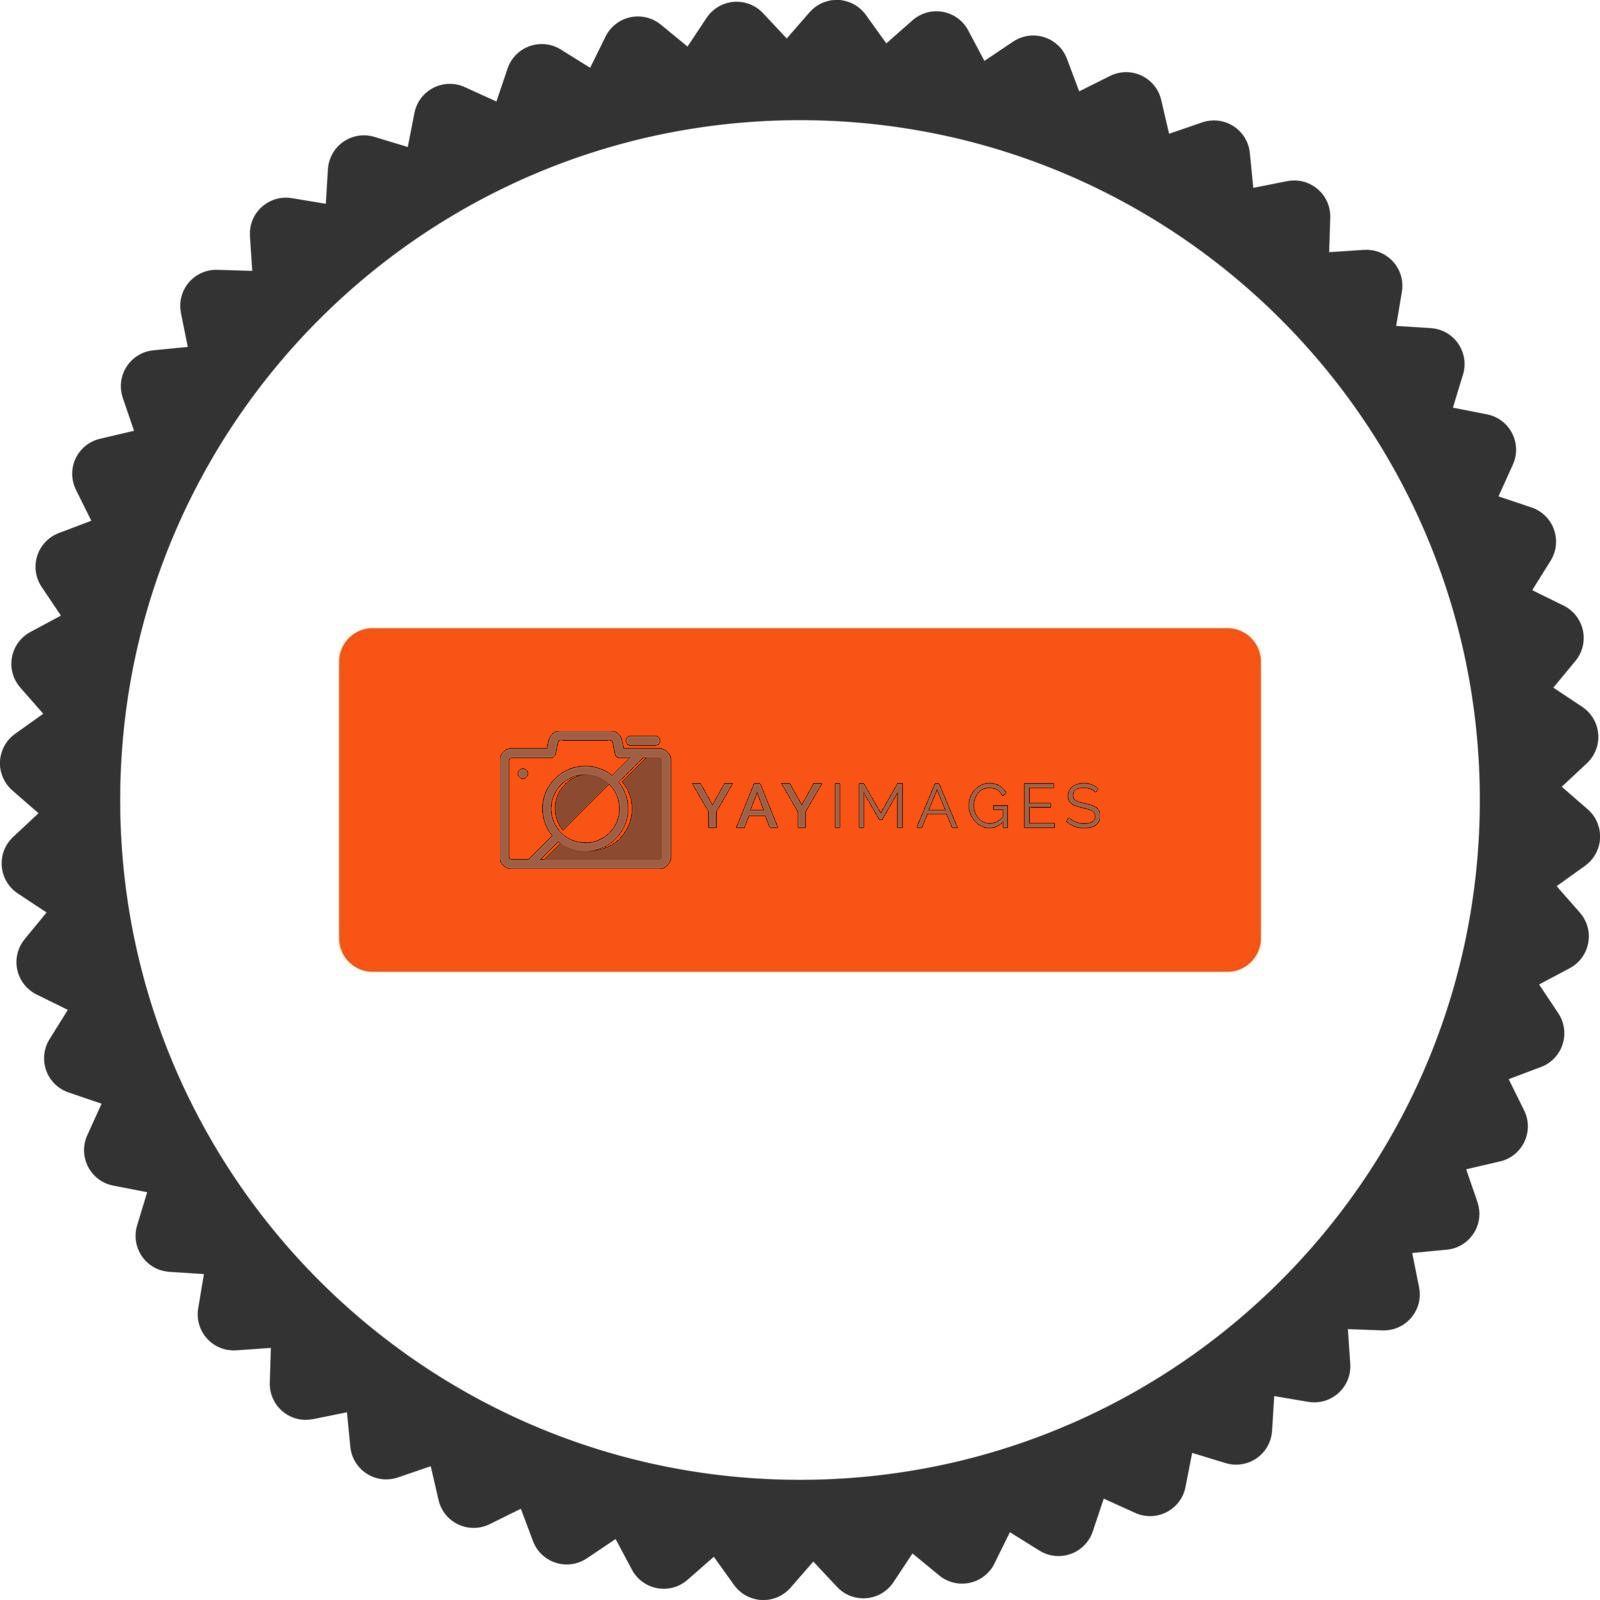 Minus flat orange and gray colors round stamp icon by Aha-Soft